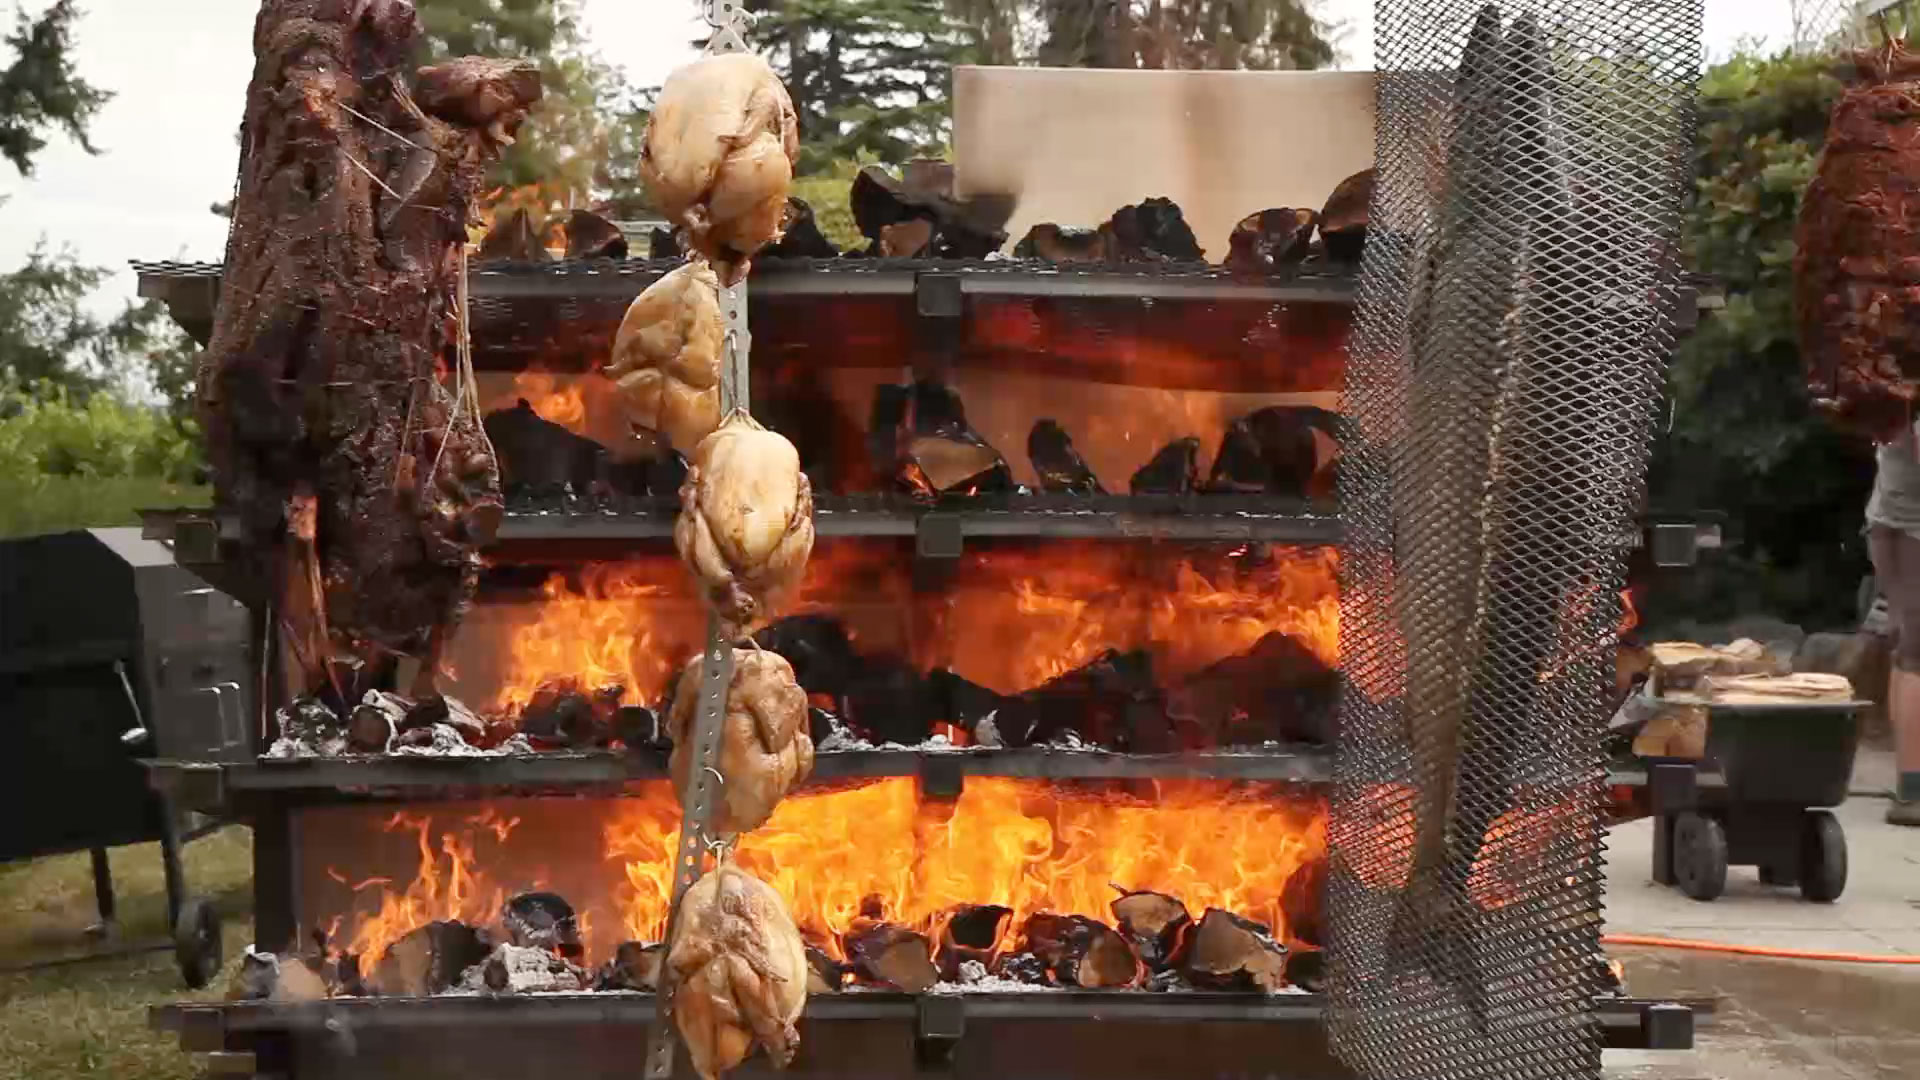 Warm Up with This Roaring, Roasting Wall of Fire